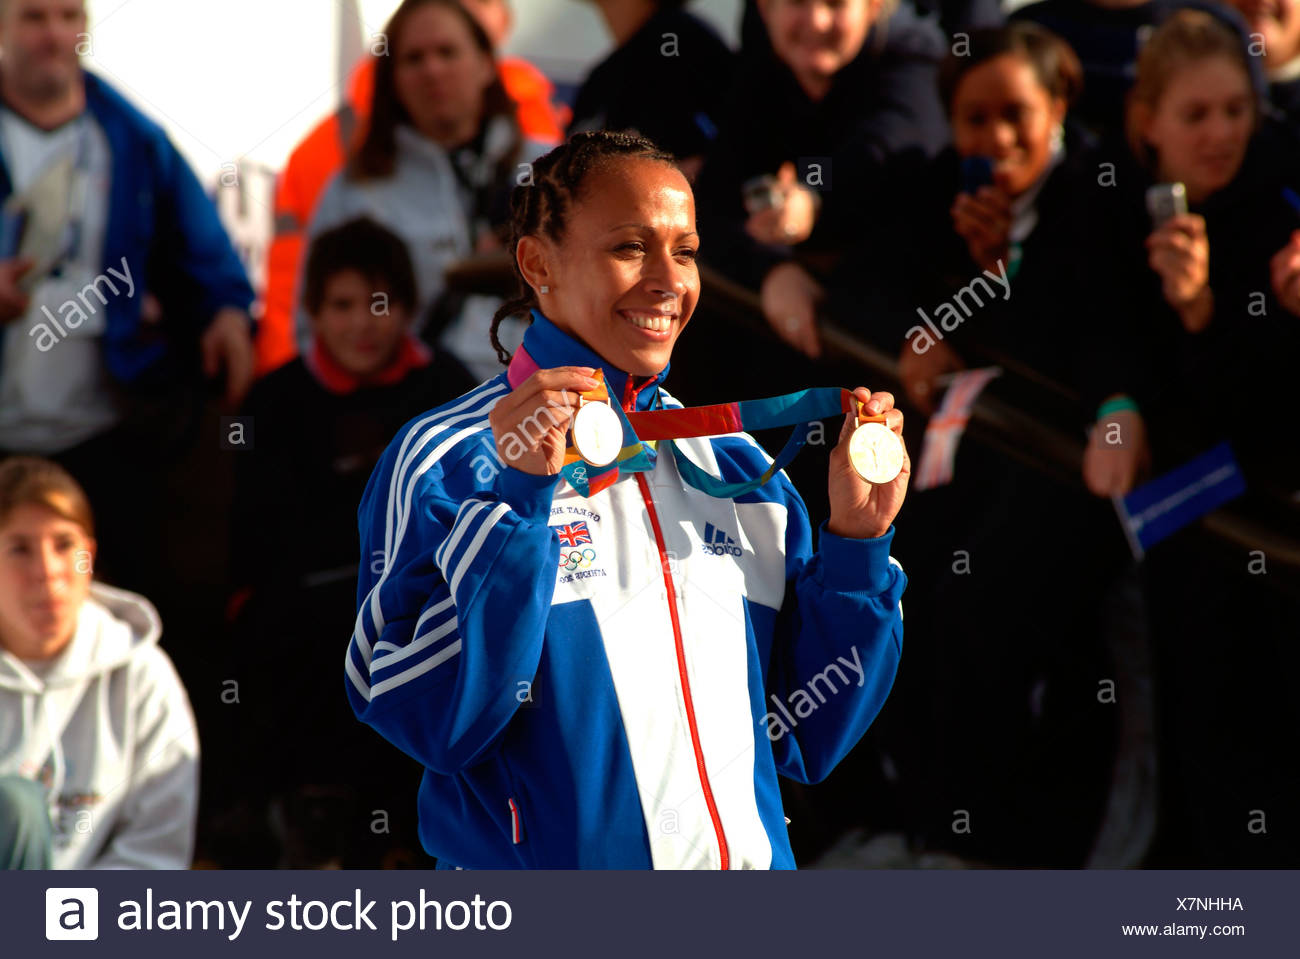 images Kelly Holmes 3 Olympic medals in middle distance running